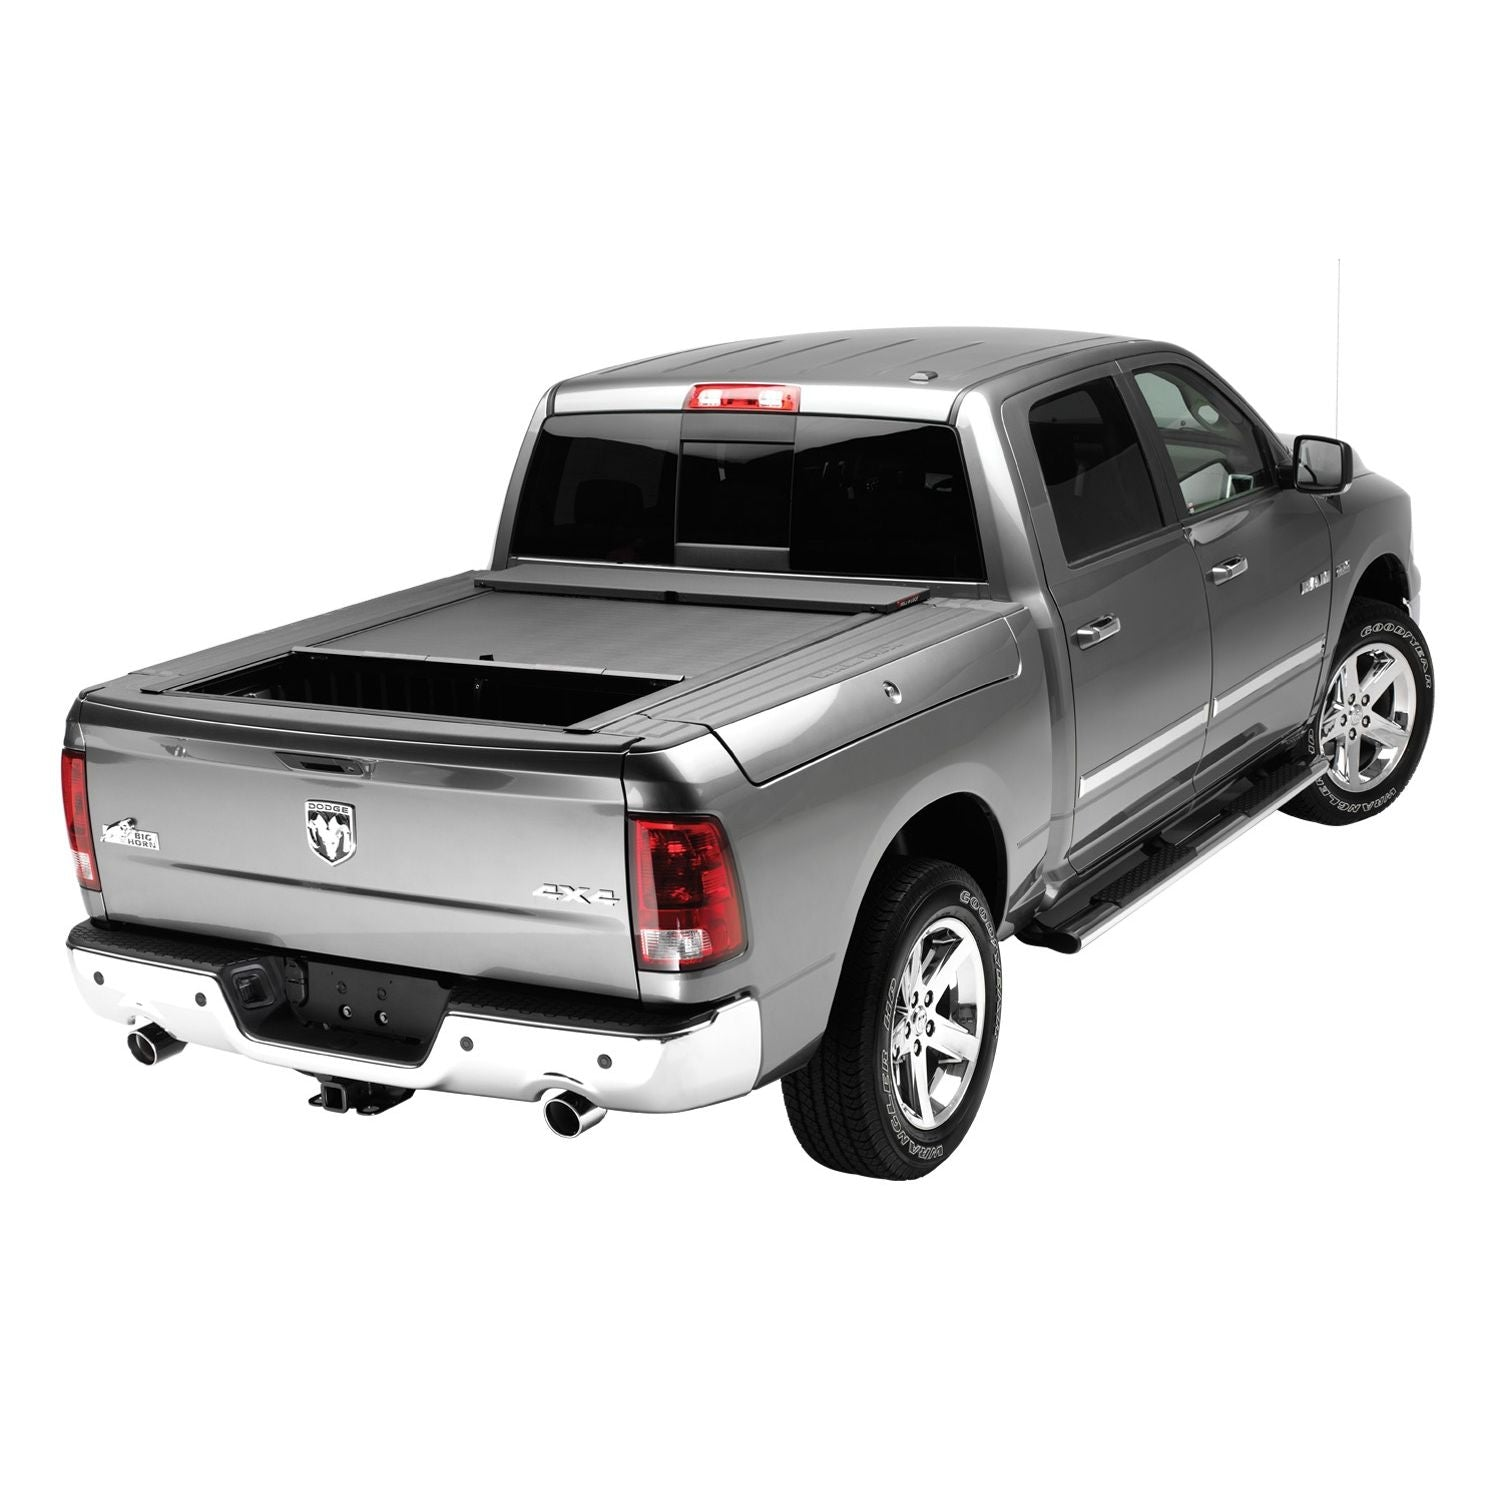 Roll-N-Lock LG446M Locking Retractable M-Series Truck Bed Tonneau Cover for 2009-2018 Dodge Ram 1500 w/RamBox | Fits 5.6 Ft. Bed